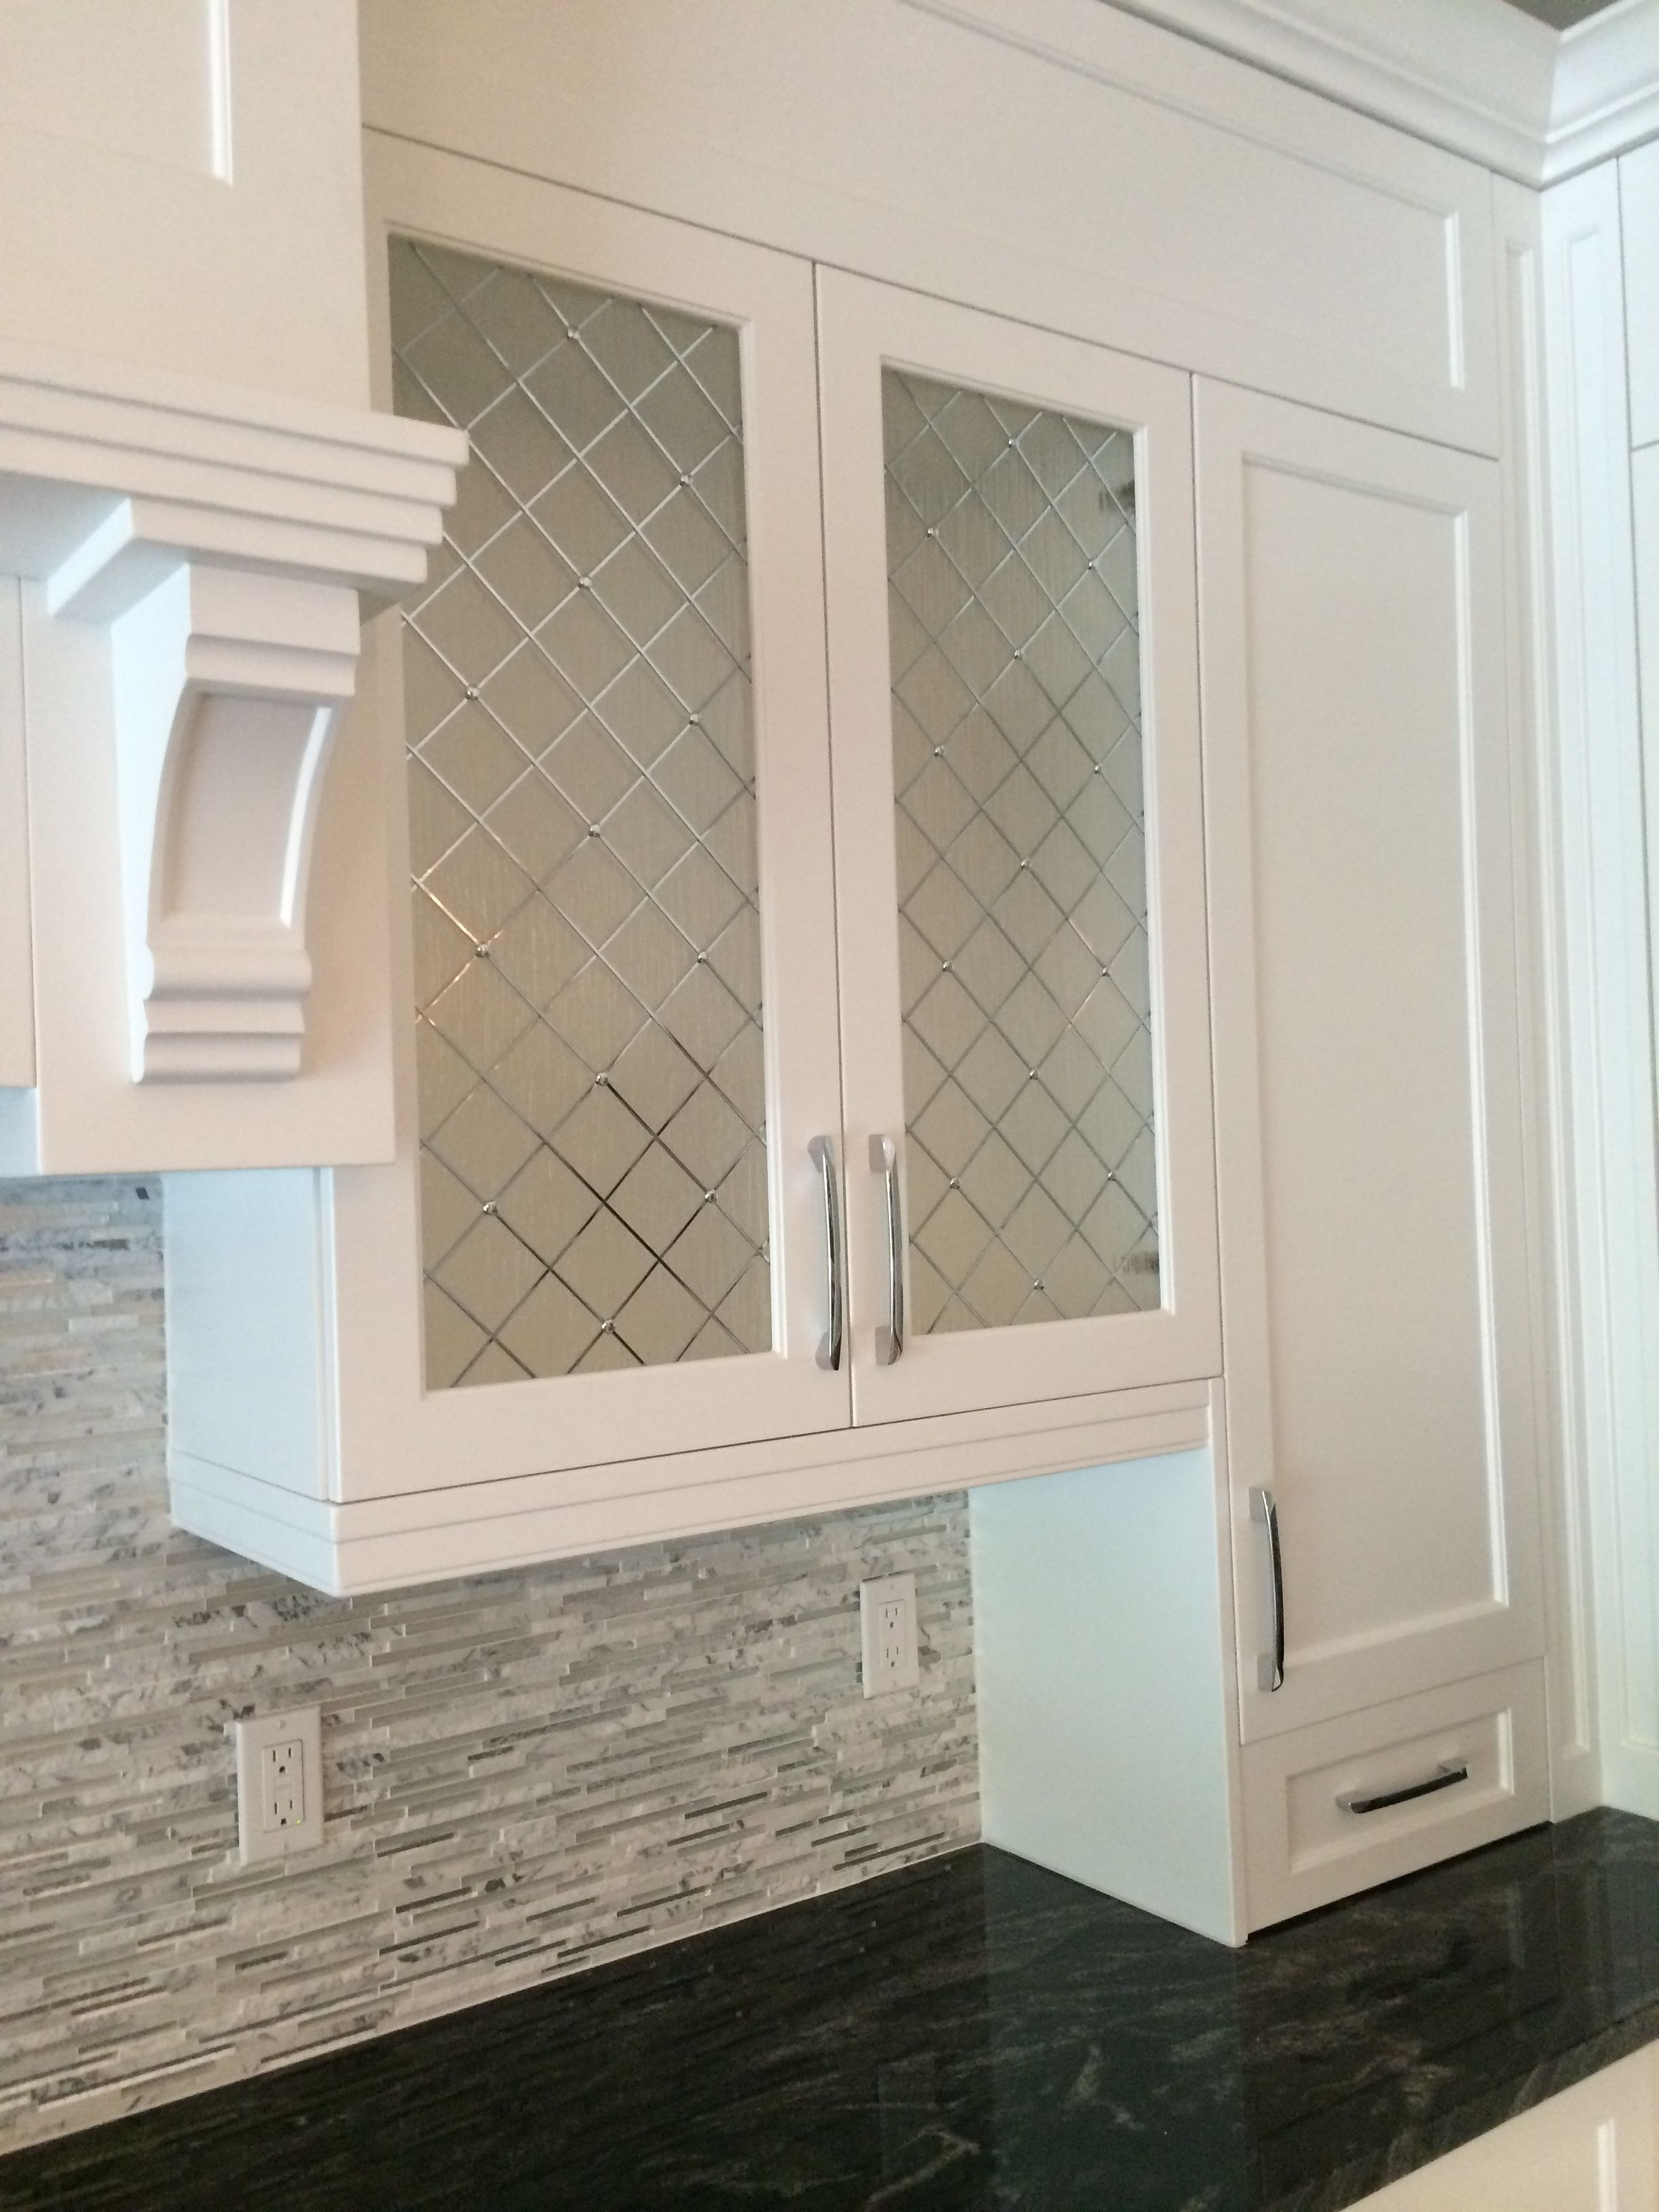 decorative glass for kitchen cabinet doors with images glass kitchen cabinet doors diy on kitchen cabinets glass inserts id=30732